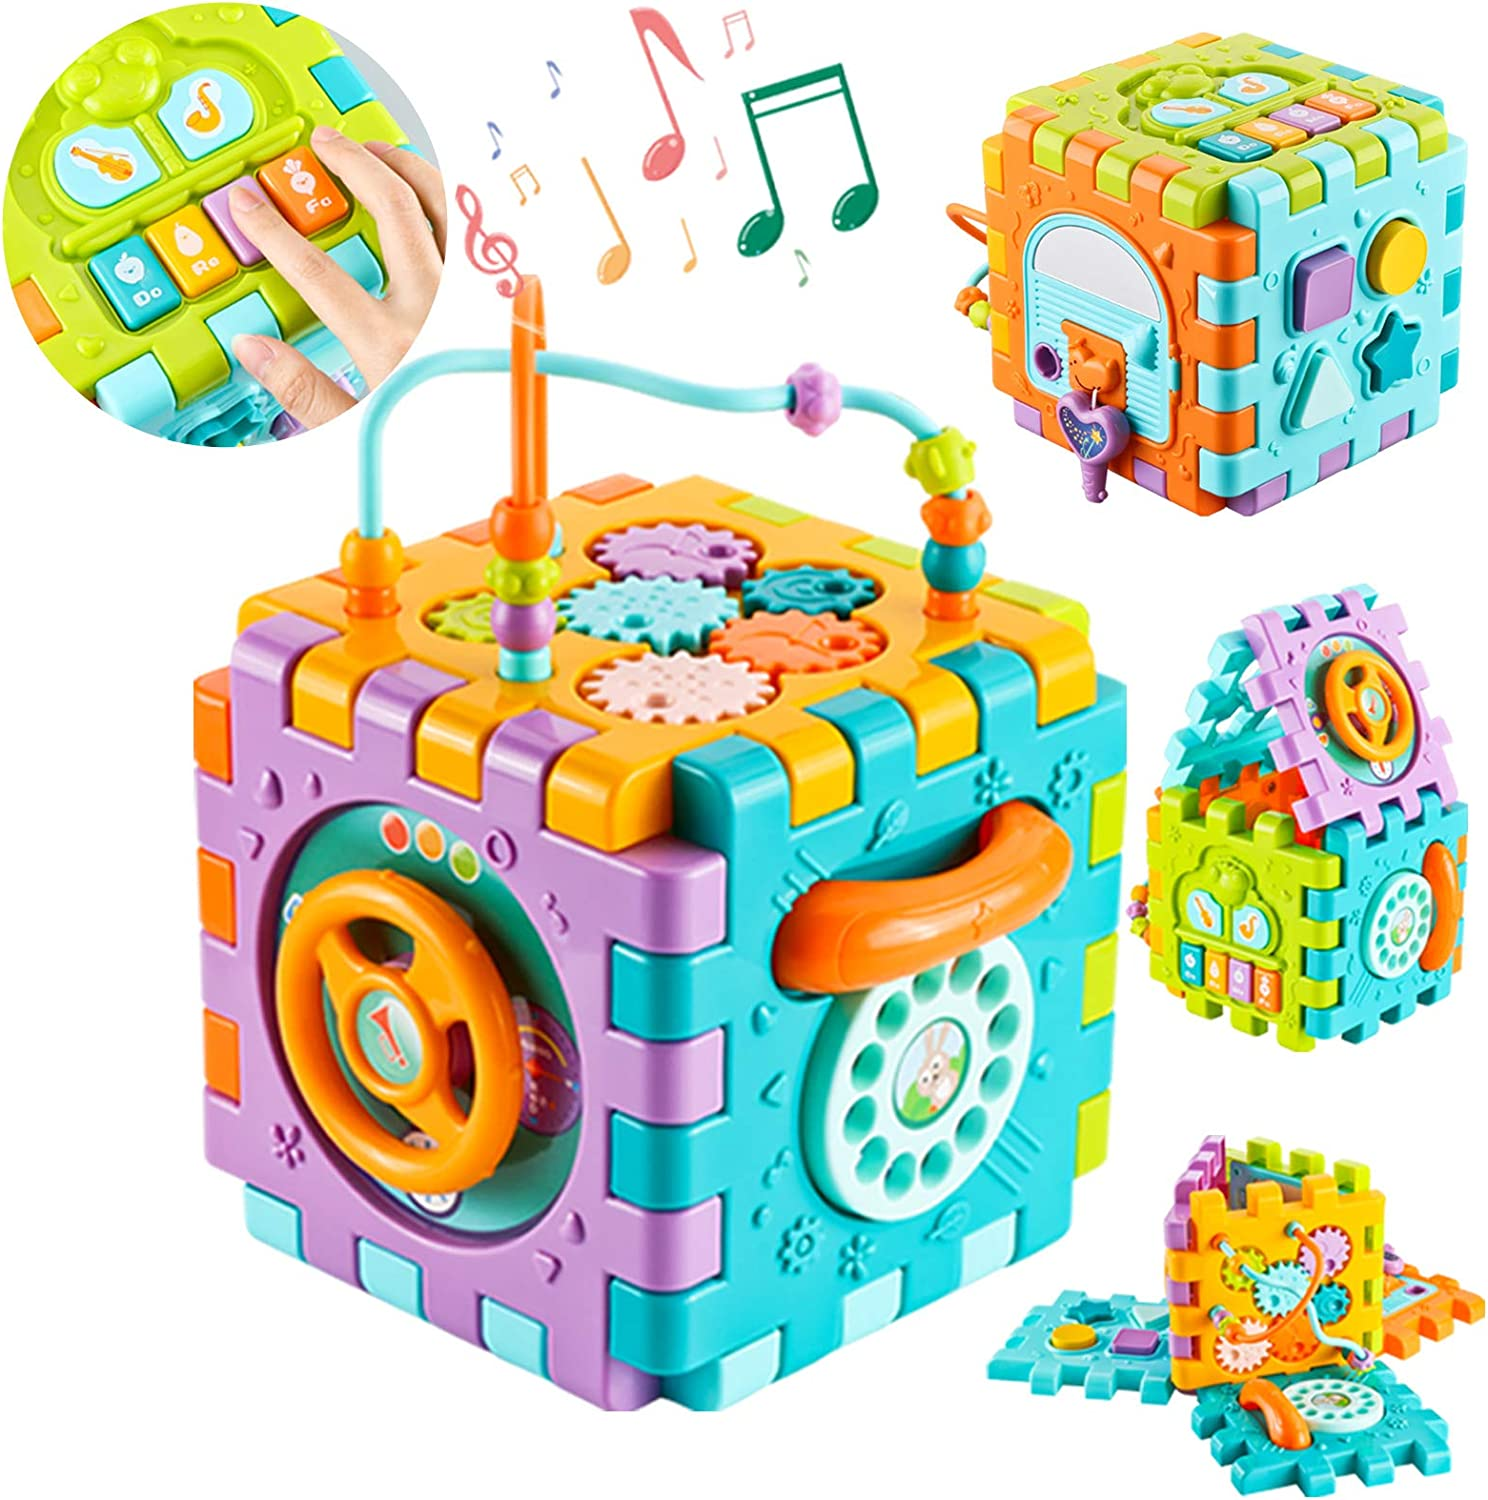 ZMZS Activity Cube Baby Toy for 6 to 12 Months, Toddler Piano Center Best First Birthday Gift for 1 Year Old Girl Boy, 6 in 1 Busy Learners Educational Bright Toy